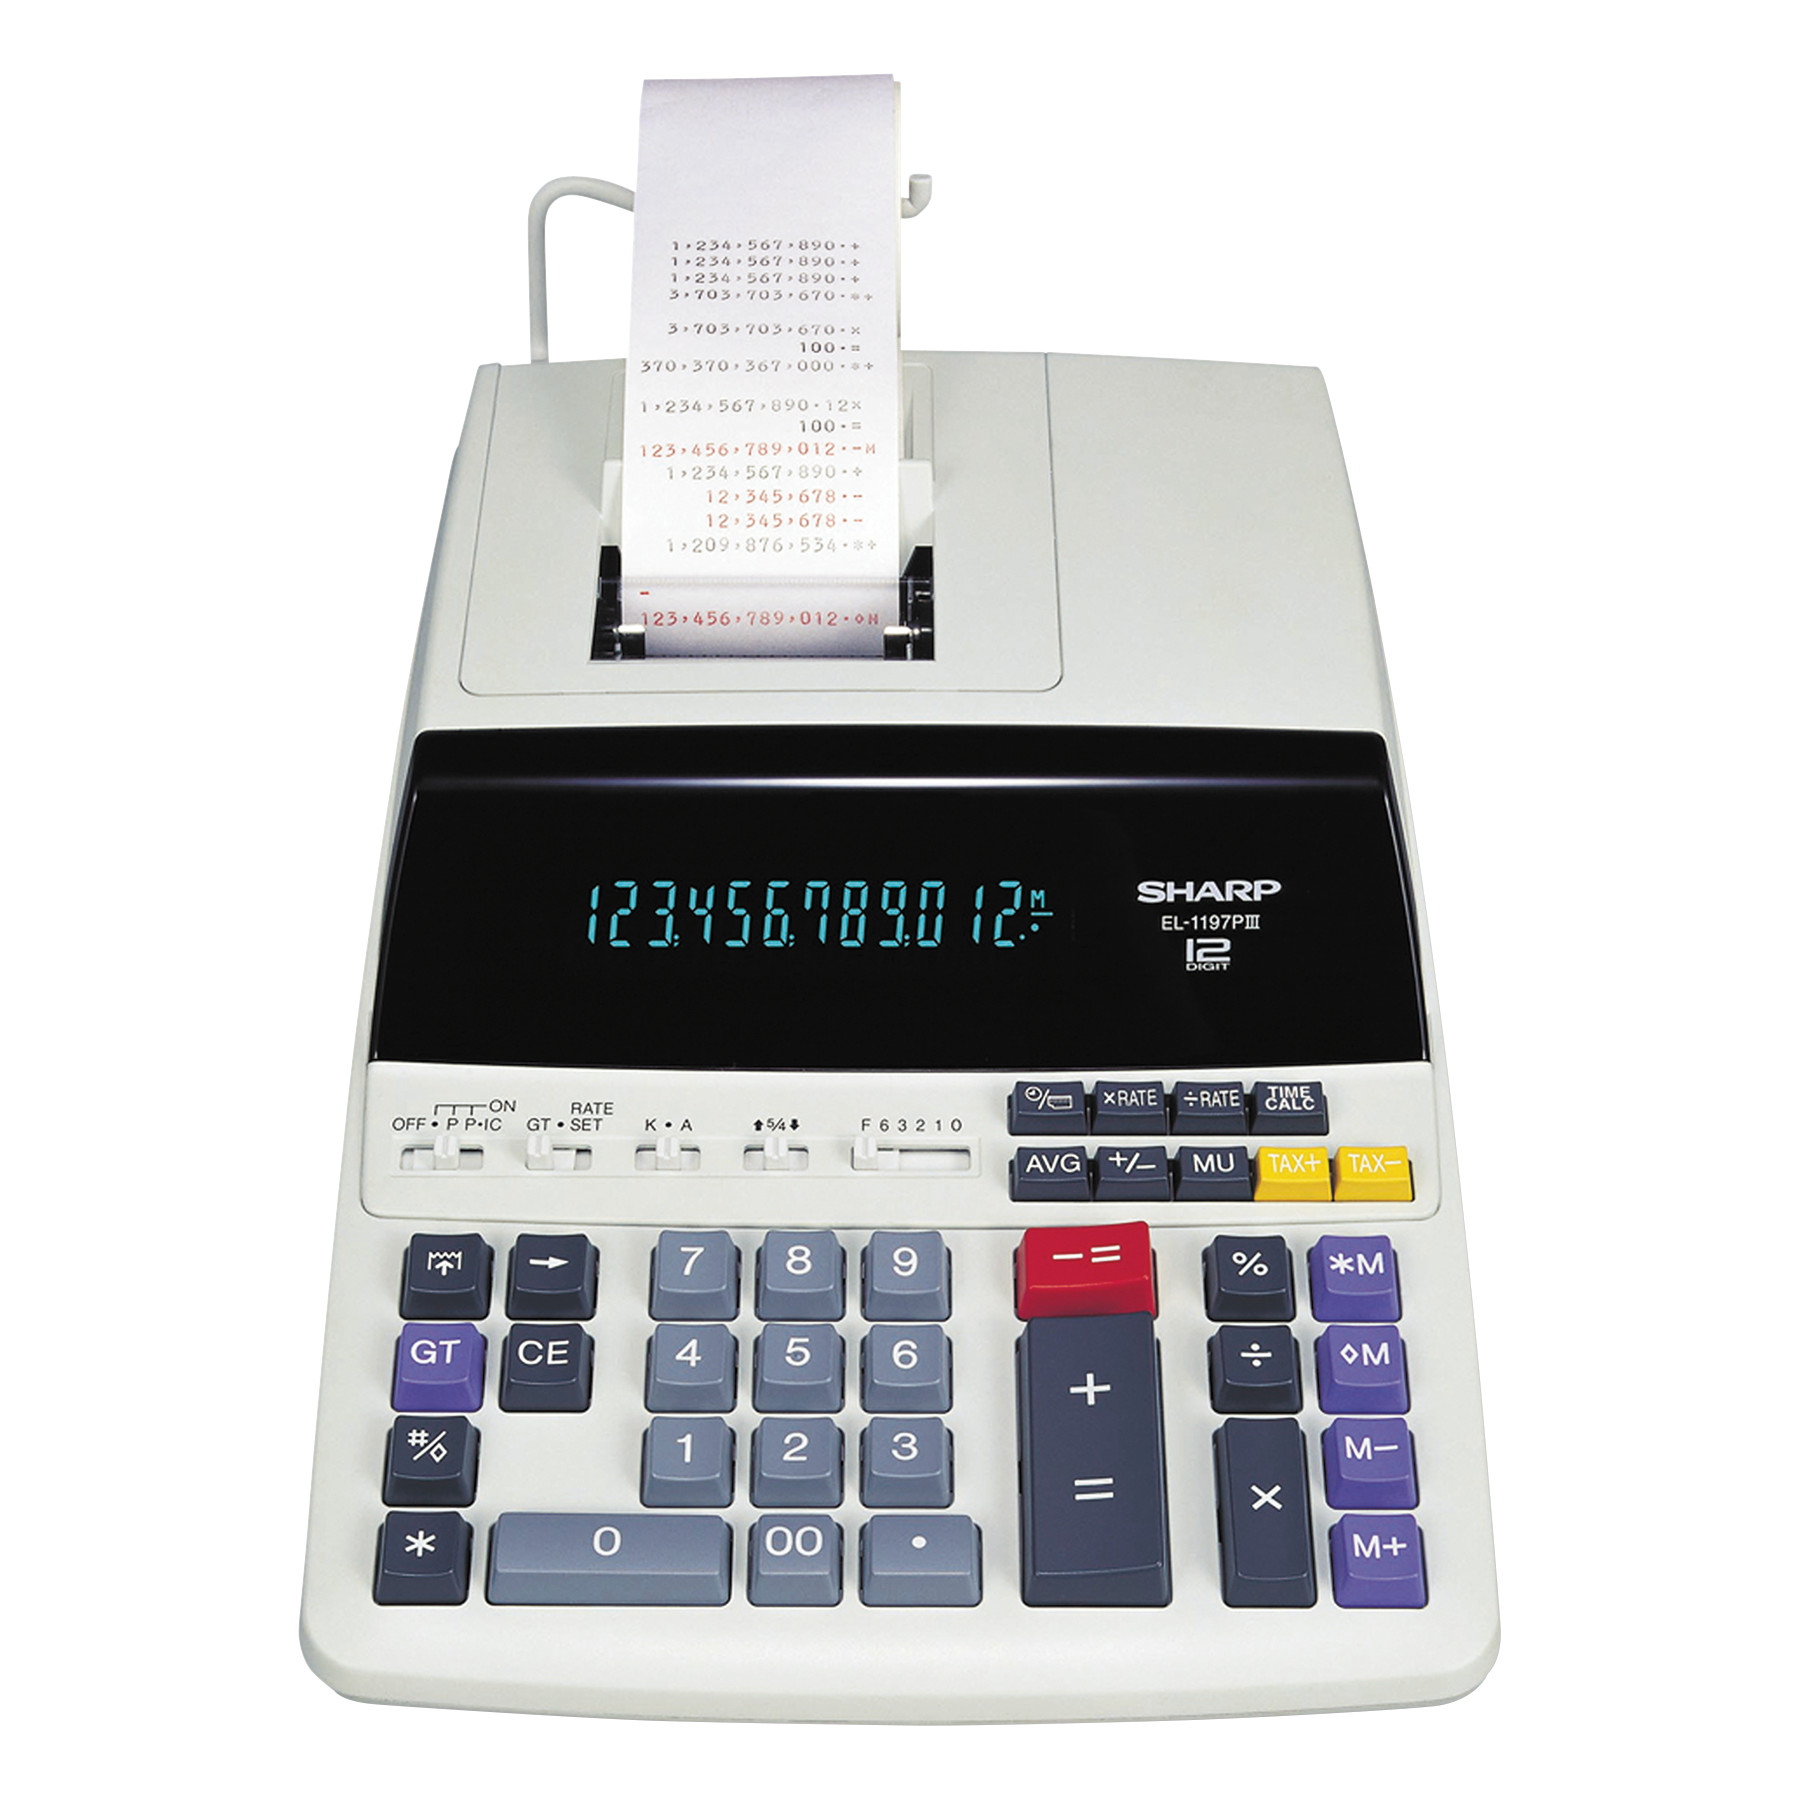 Sharp EL1197PIII Two-Color Printing Desktop Calculator, Black Red Print, 4.5 Lines Sec by Sharp Electronics